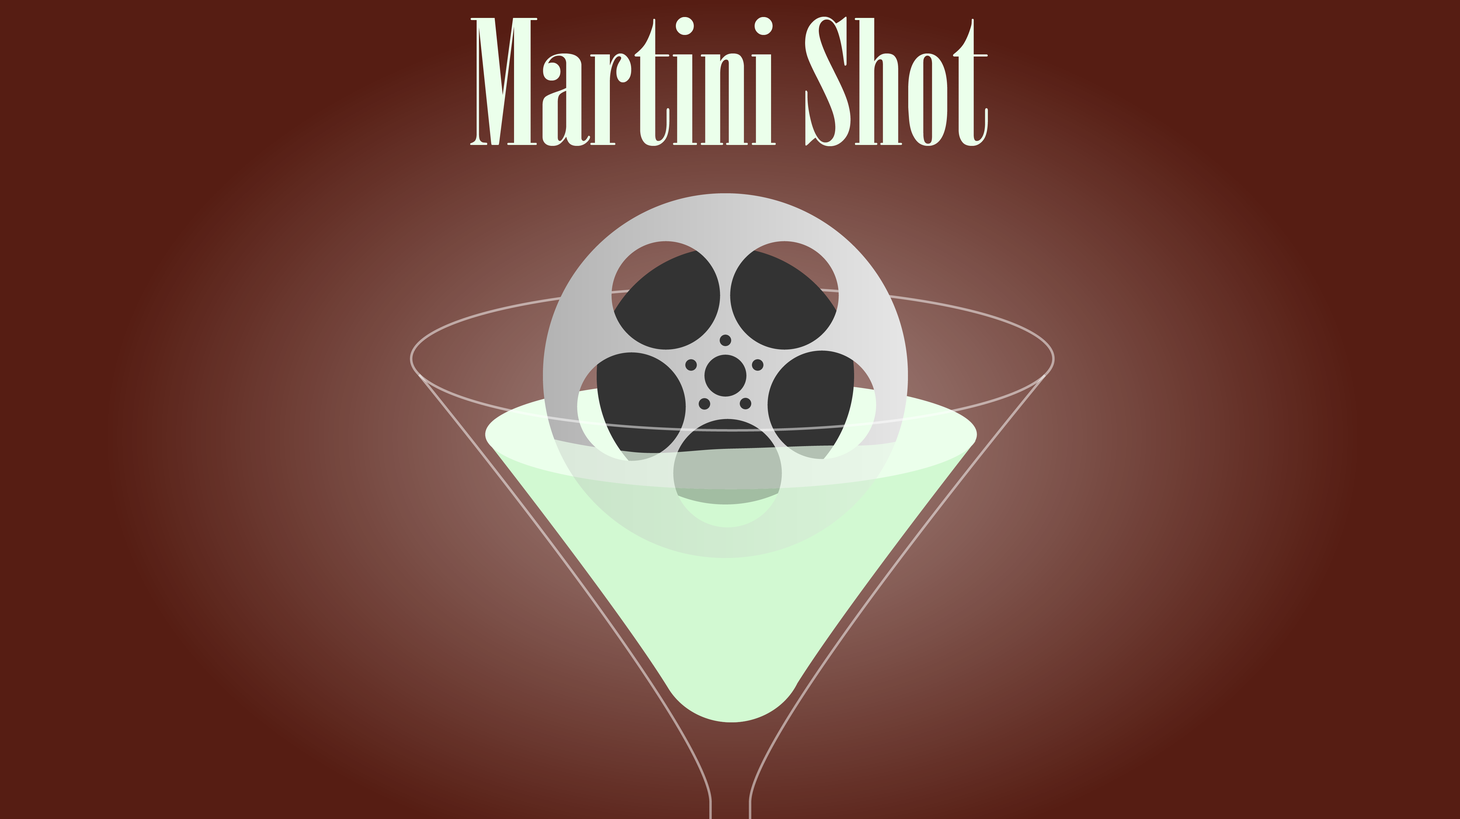 This is Rob Long, and on today's Martini Shot I take a long boat trip to interesting and exotic places, and end up heading back to the boat for pizza night, which is a metaphor I hope everyone can relate to.